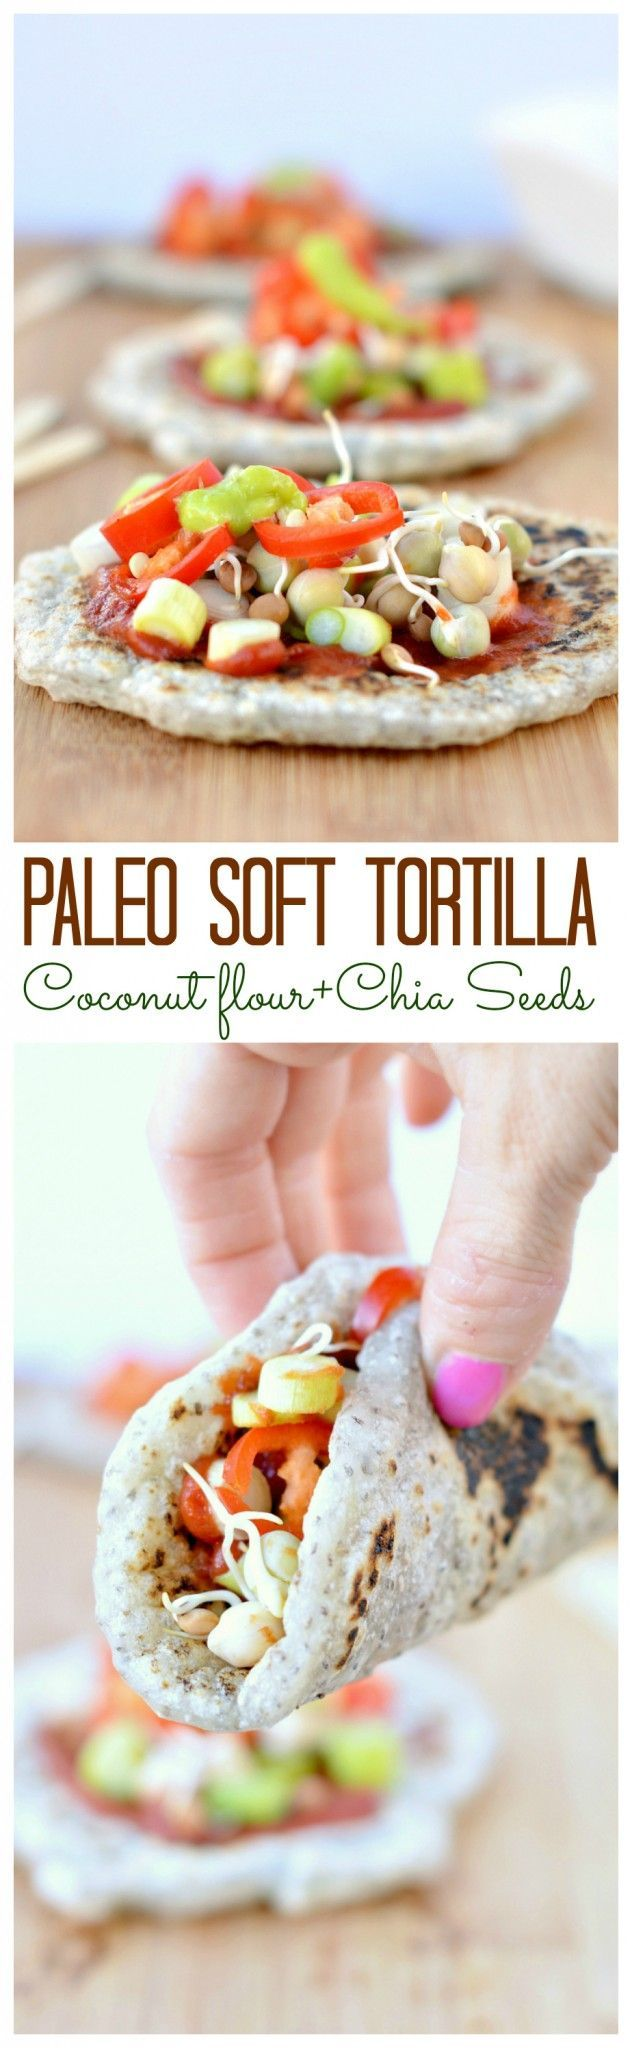 I love those healthy soft tortilla made with coconut flour and chia seeds. Soft, chewy and fulfilling. And they are also gluten free and vegan! #vegan #paleomeal #paleodinner #paleofood #tortilla #chiaseed #blackchiaseed #arrowrootflour #tapioca #tapiocaflour